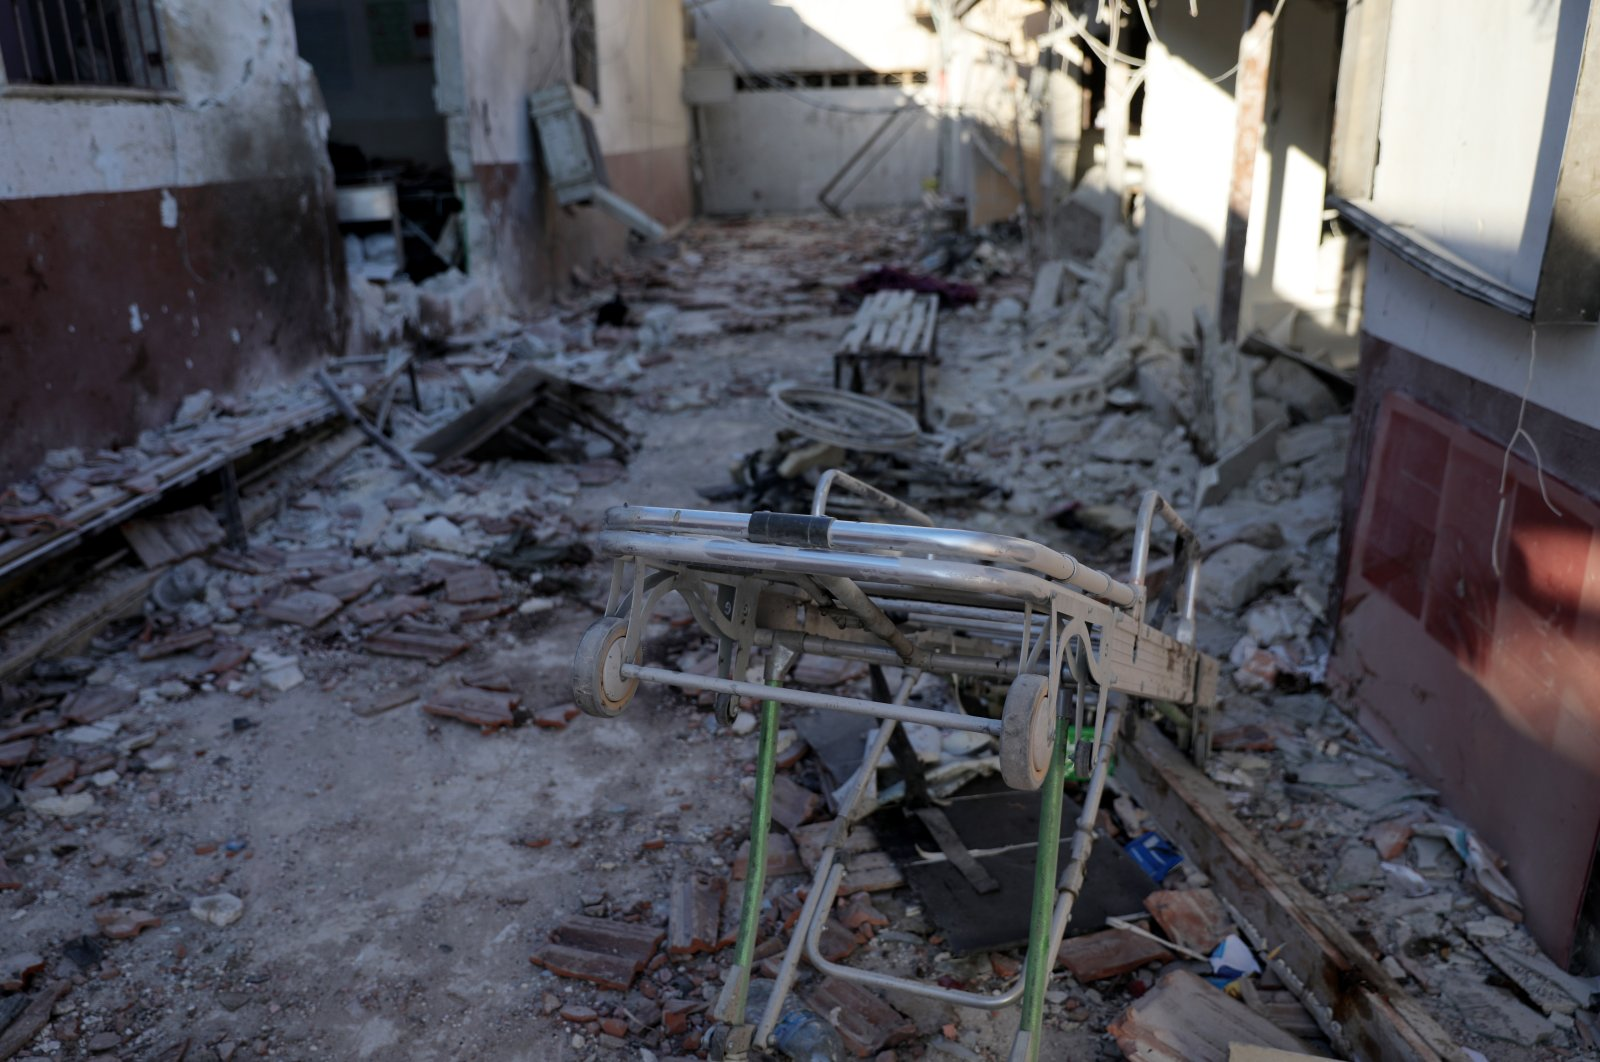 Destruction of Al-Shifa Hospital in the city of Afrin, northern Syria, 13 June 2021. The hospital was destroyed during missile shelling that came from areas controlled by the YPG terror group and left 18 dead and 63 wounded. (EPA Photo)